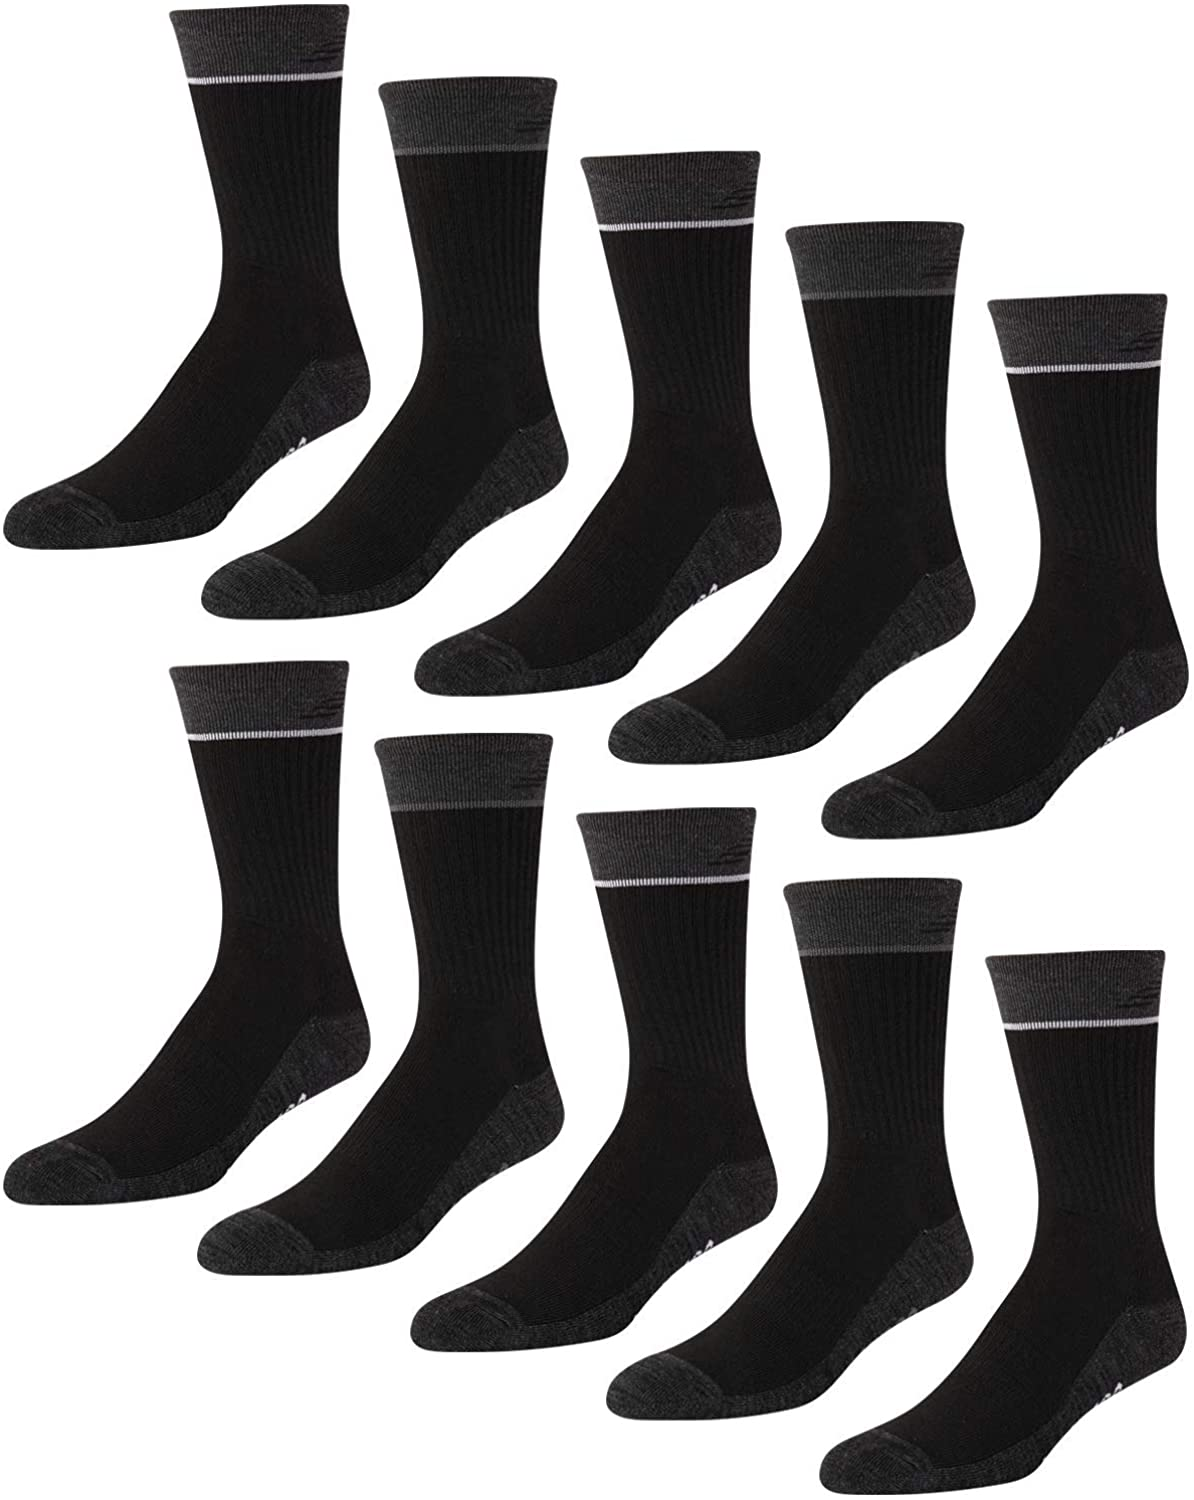 New Balance Men's Athletic Arch Compression Cushion Comfort Crew Socks (10 Pack)